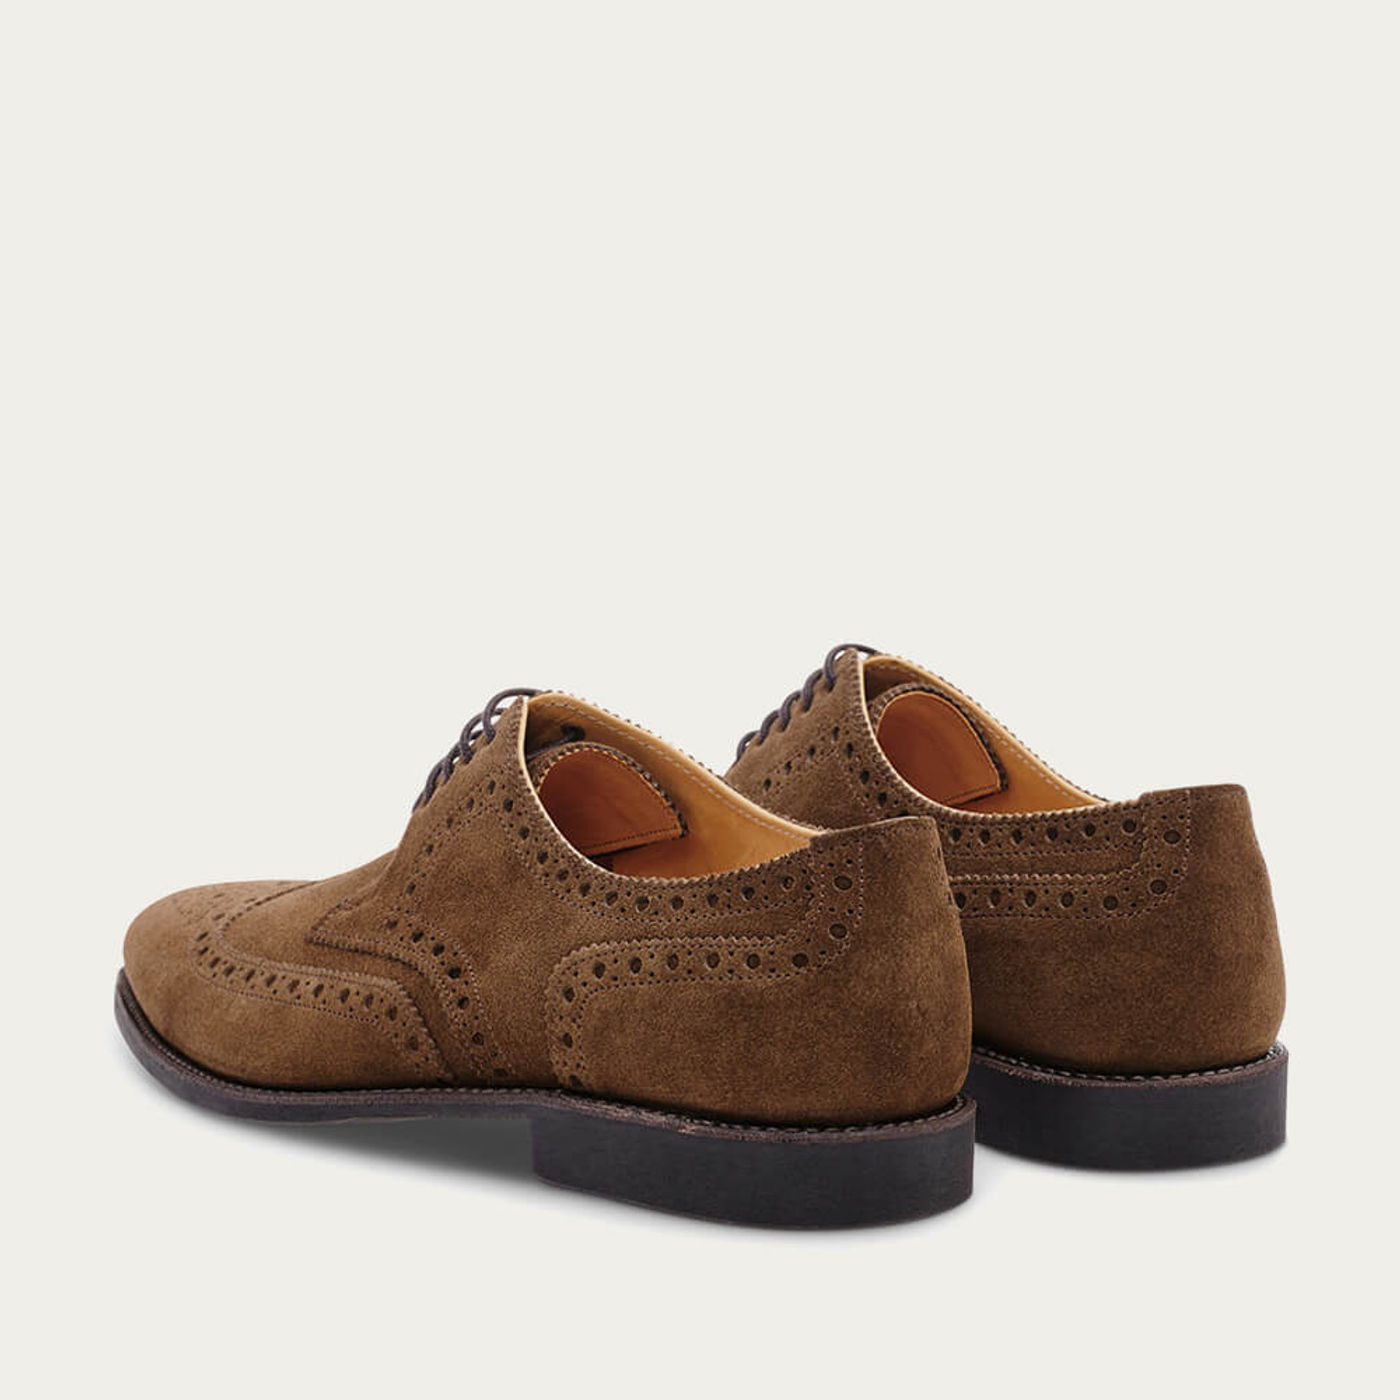 Hunting Green Budapest Suede Shoes   Bombinate